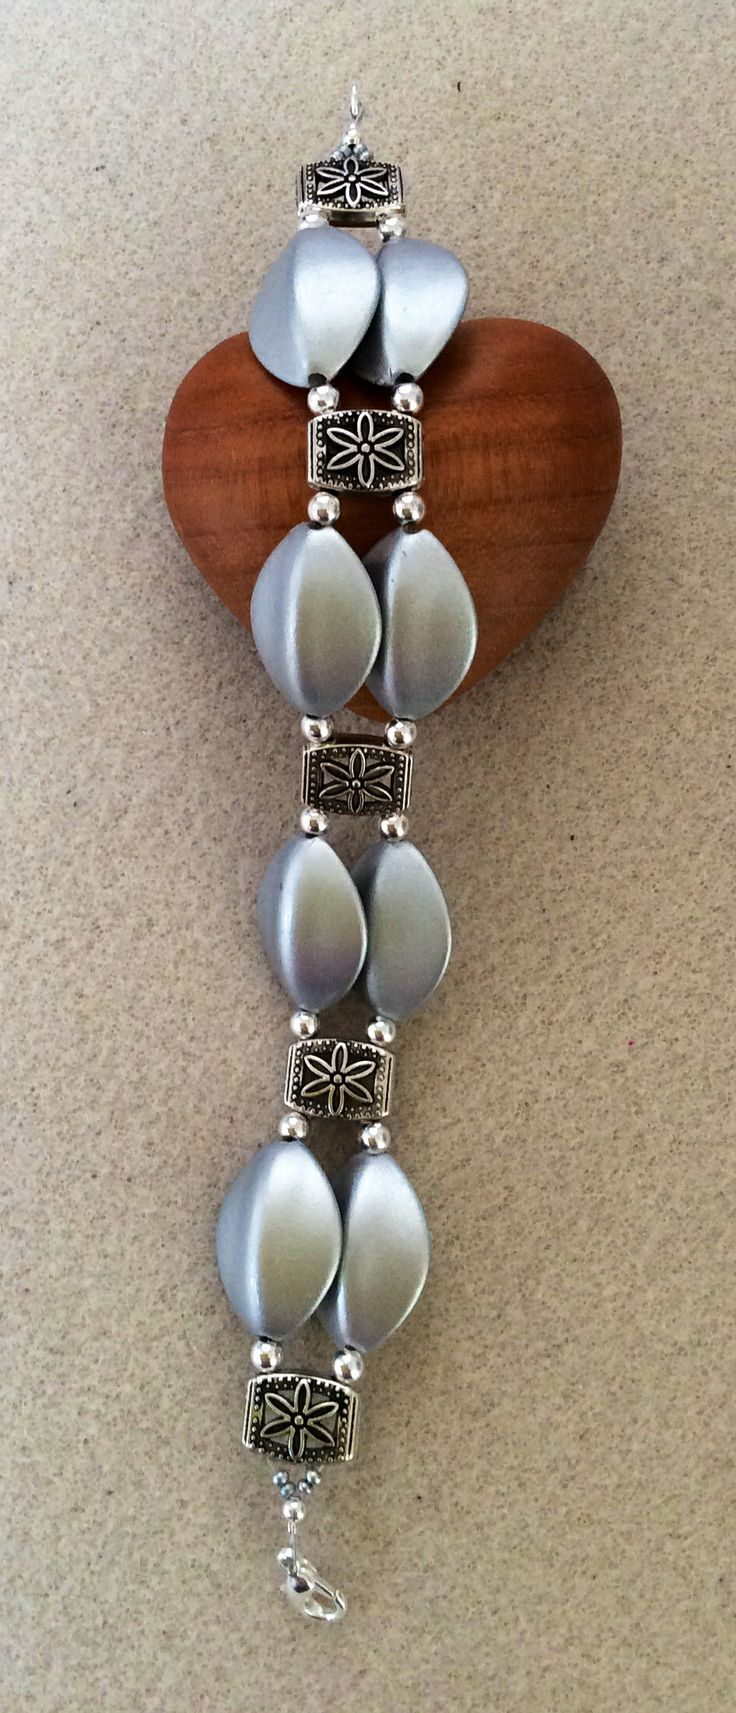 Lovely silver beads with antique silver spacers, www.facebook.com/honeyandginger.1